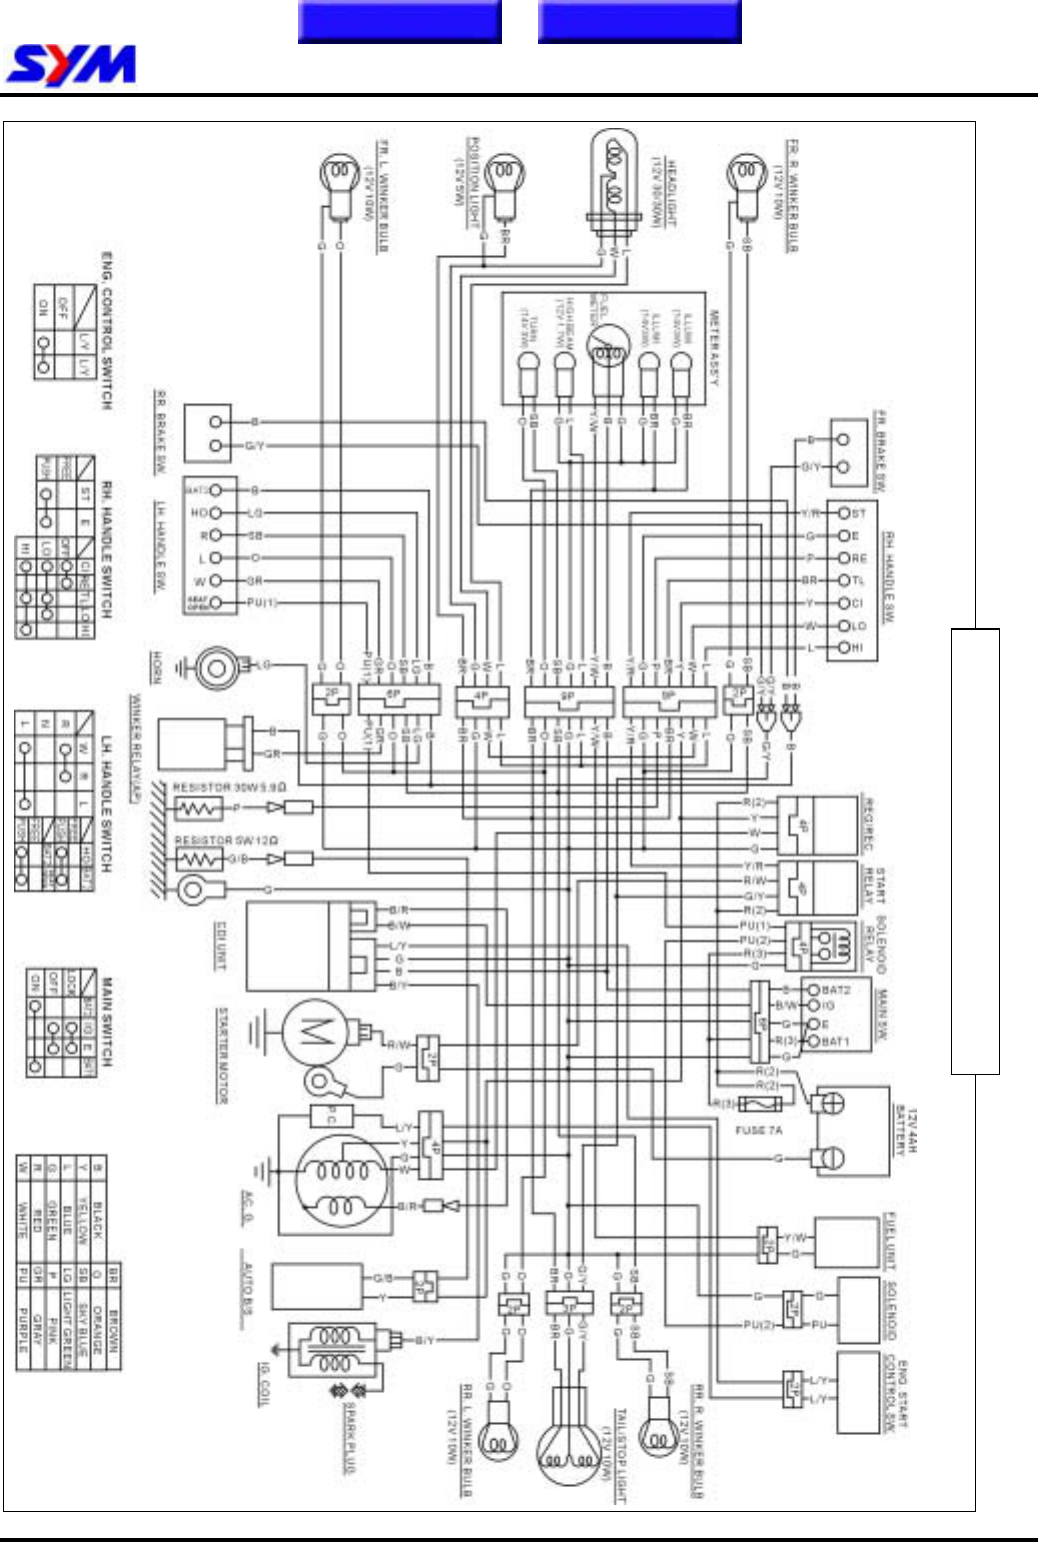 Wiring Diagram Of Mio Sporty : Handleiding sym mio pagina van english